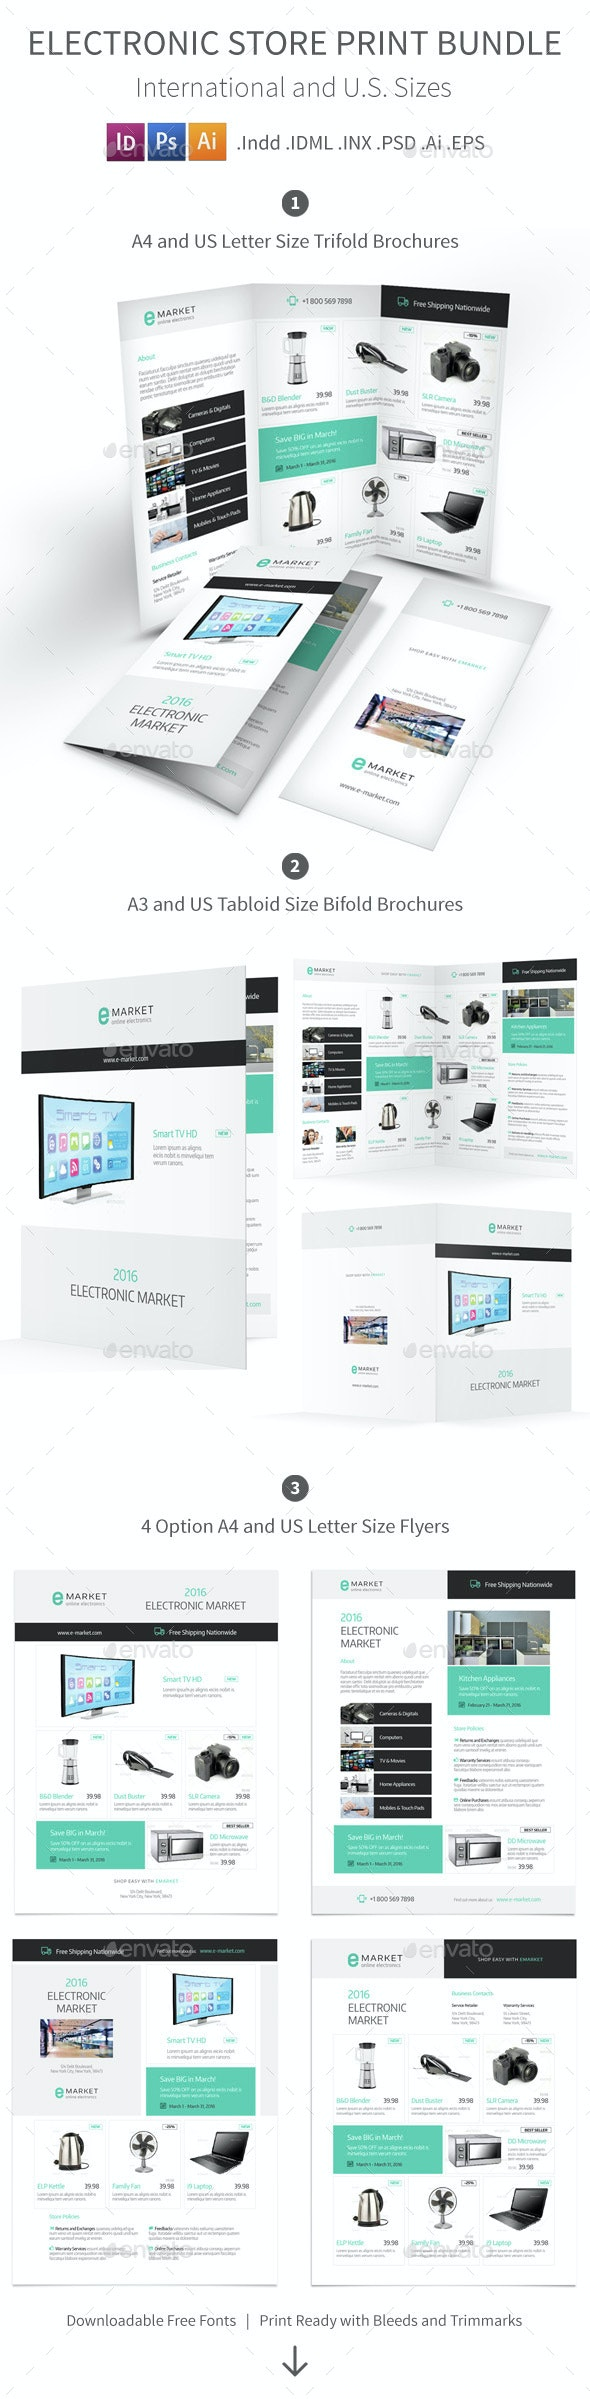 Electronic Store Print Bundle - Informational Brochures